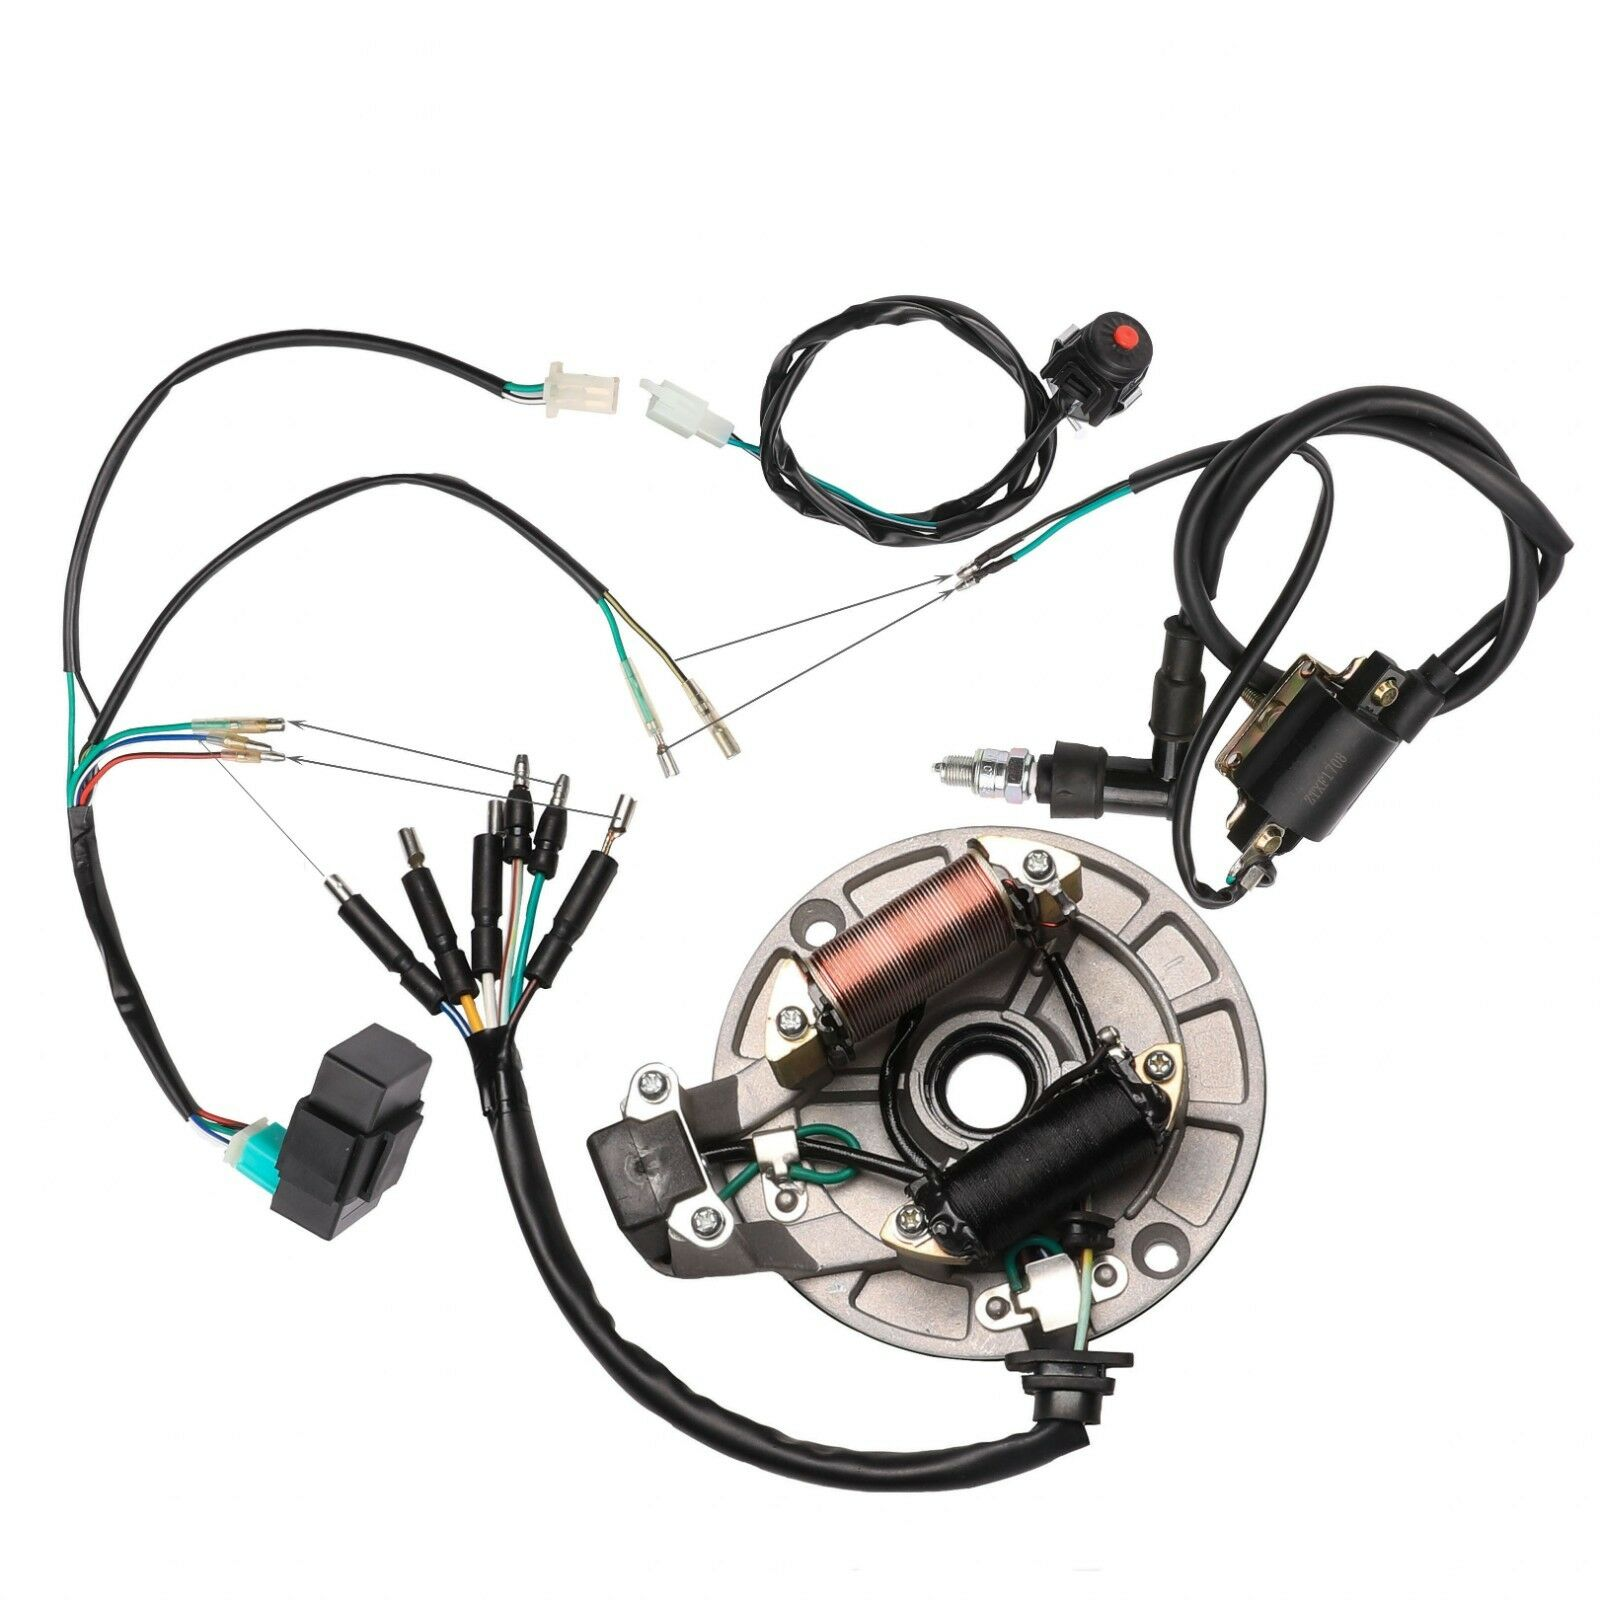 Full Electrics Wiring Harness Coil Cdi Stator Ignition For 50cc 1 Of 12free Shipping